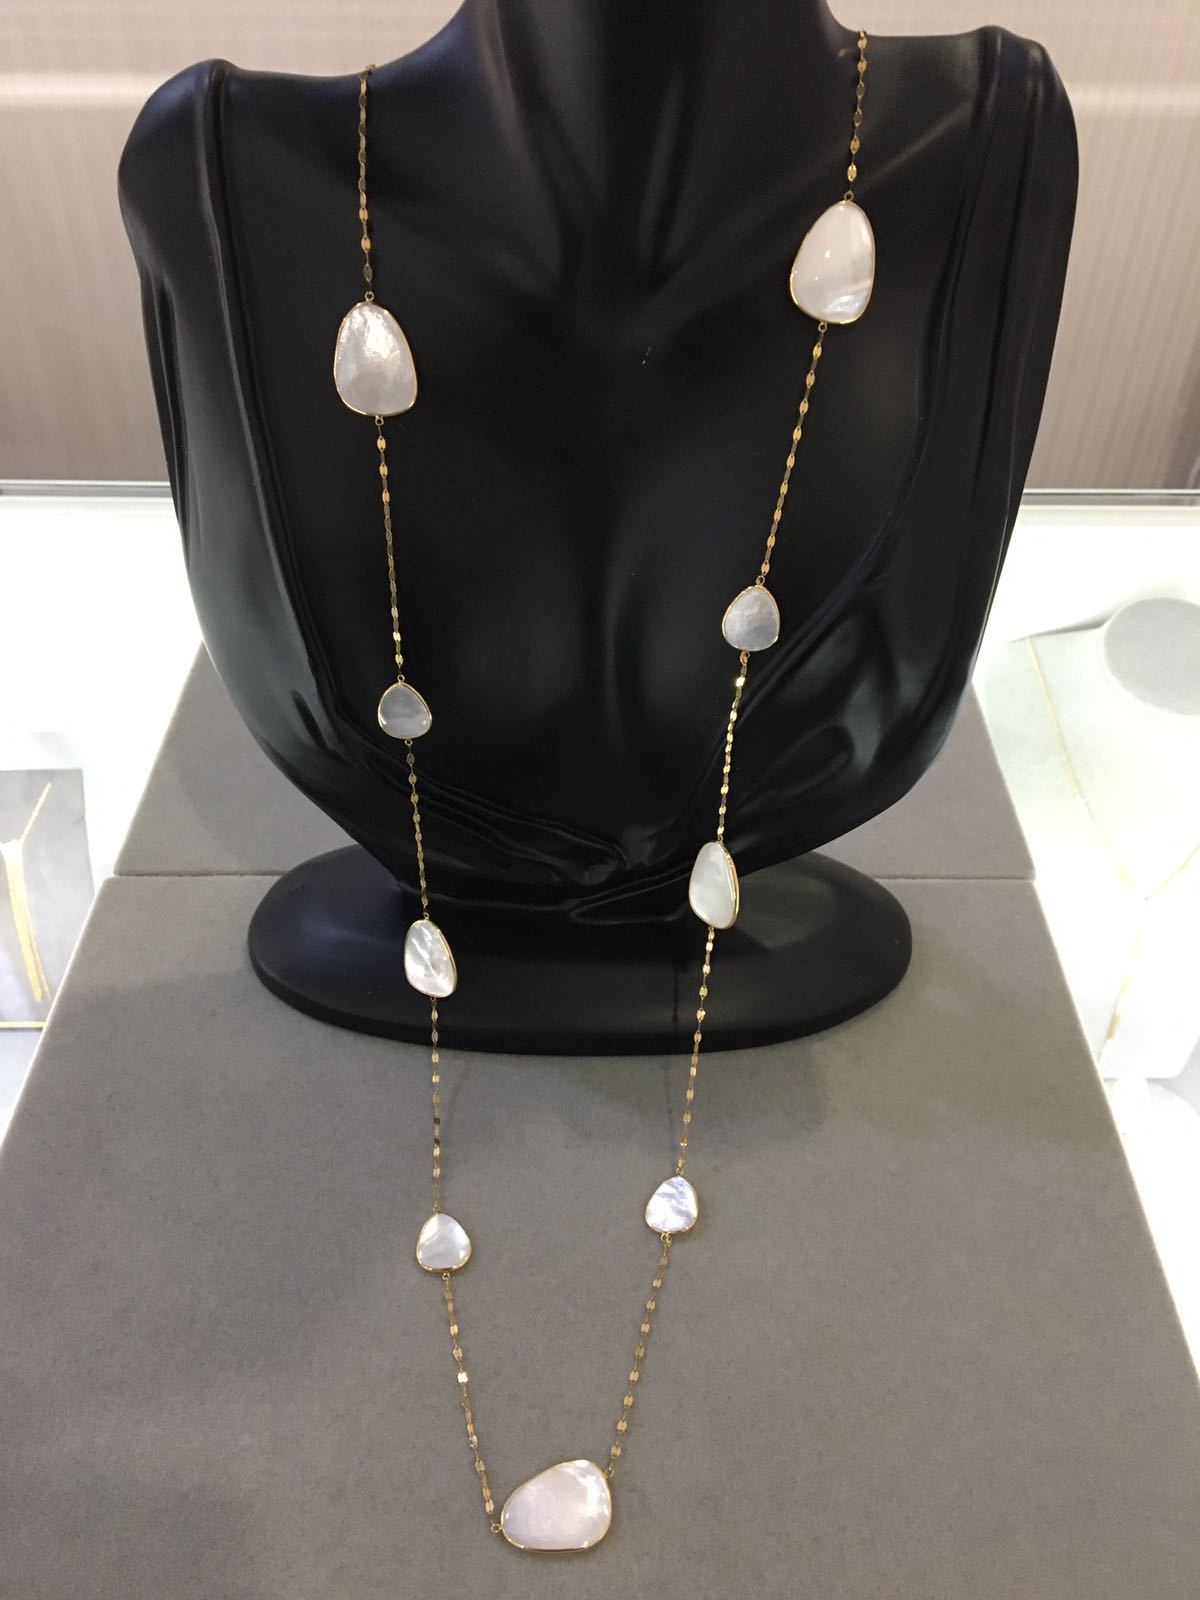 SALE! Free Shape White Mother of Pearl Necklace